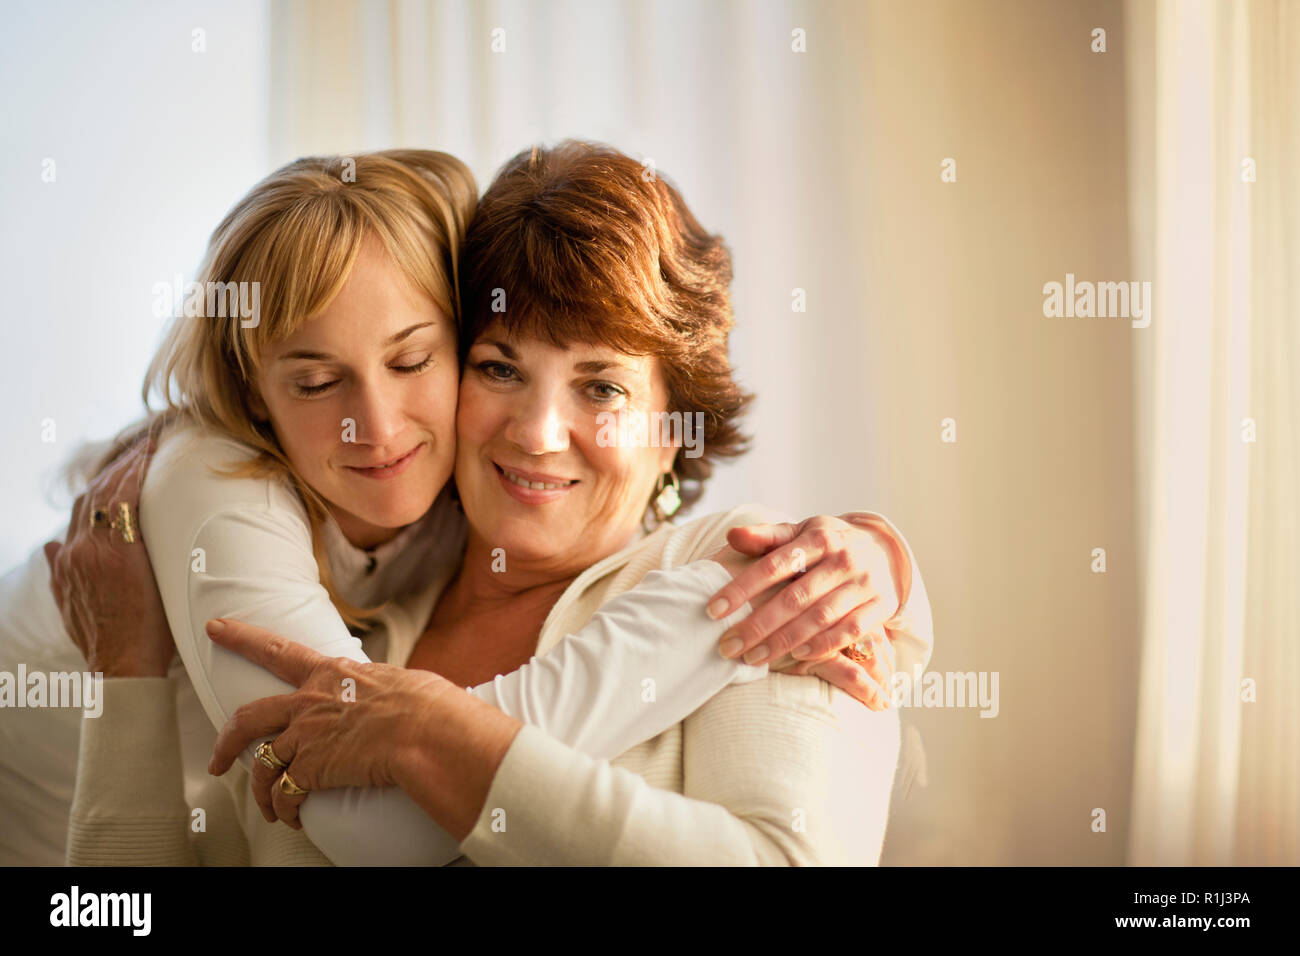 Portrait of a mature woman being hugged by her adult daughter. Stock Photo